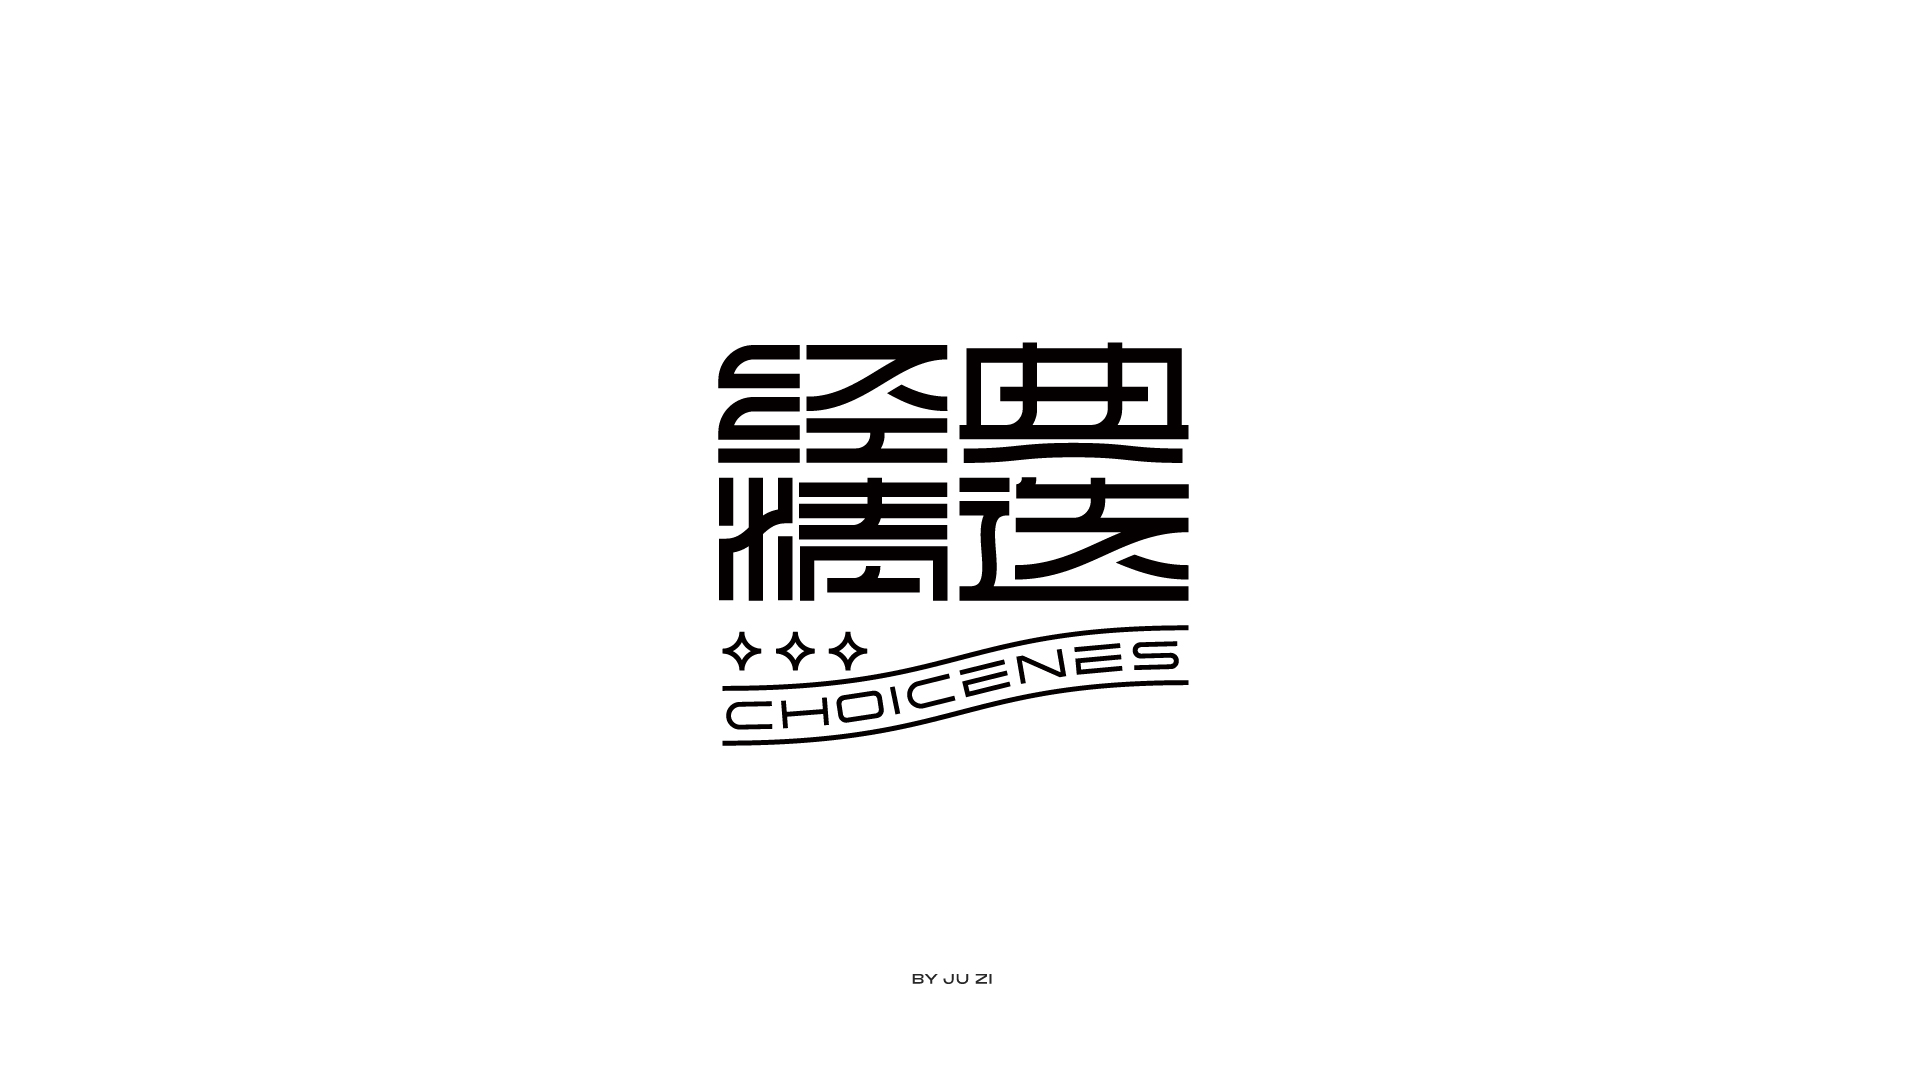 39P Collection of the latest Chinese font design schemes in 2021 #.249自言字语 ——